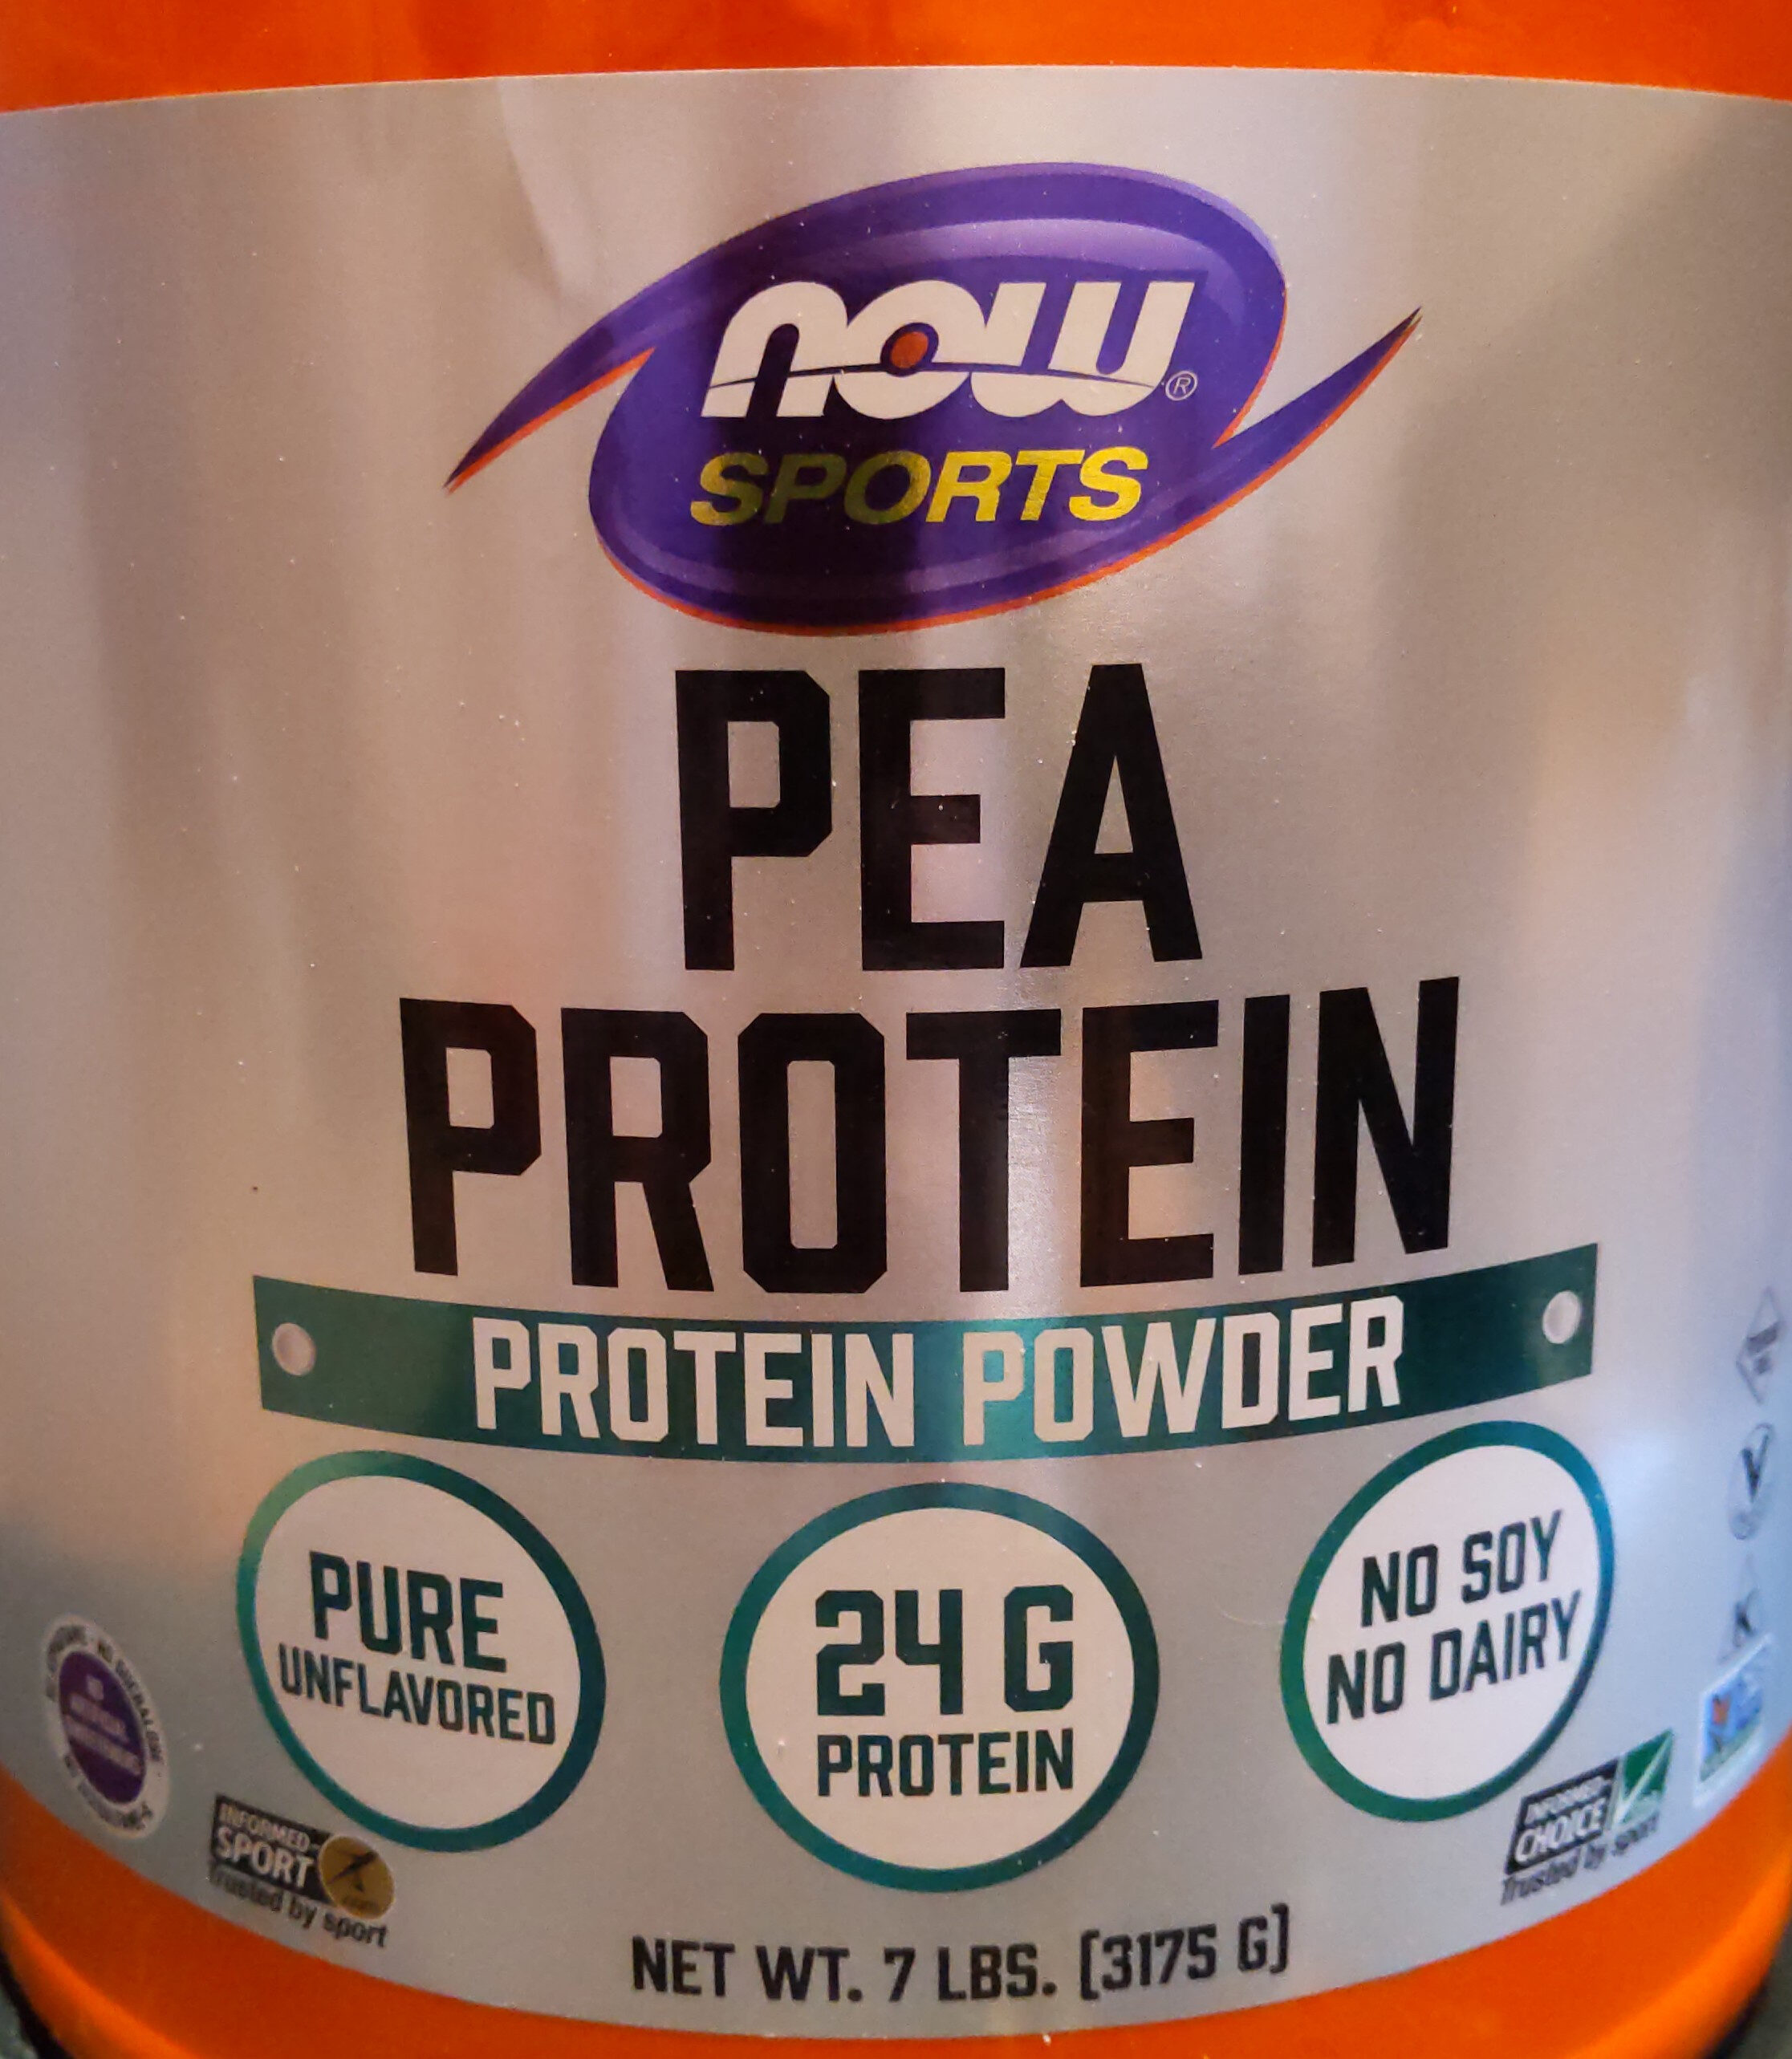 Pea Protein, Pure Unflavored Powder - Product - en